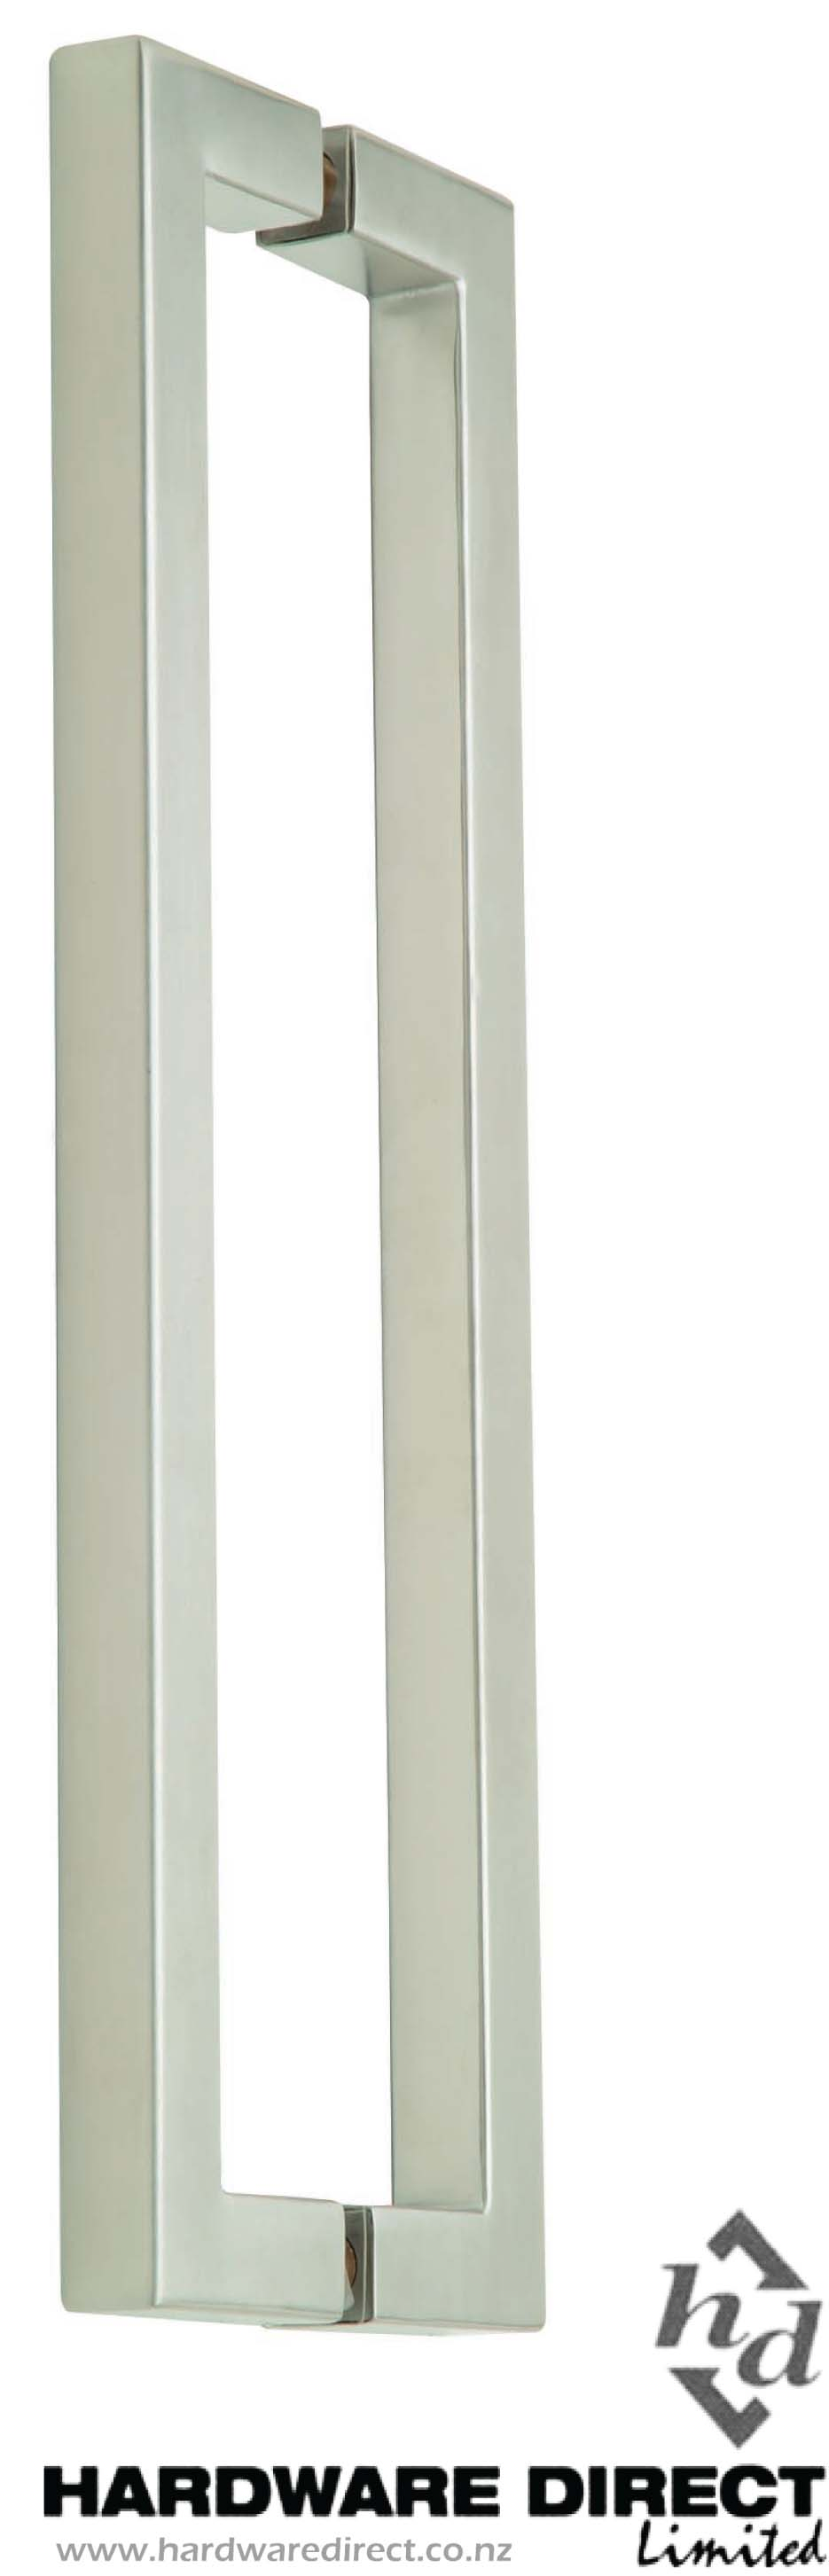 Hardware Direct Legge Dalco 1213 Back To Back Handles